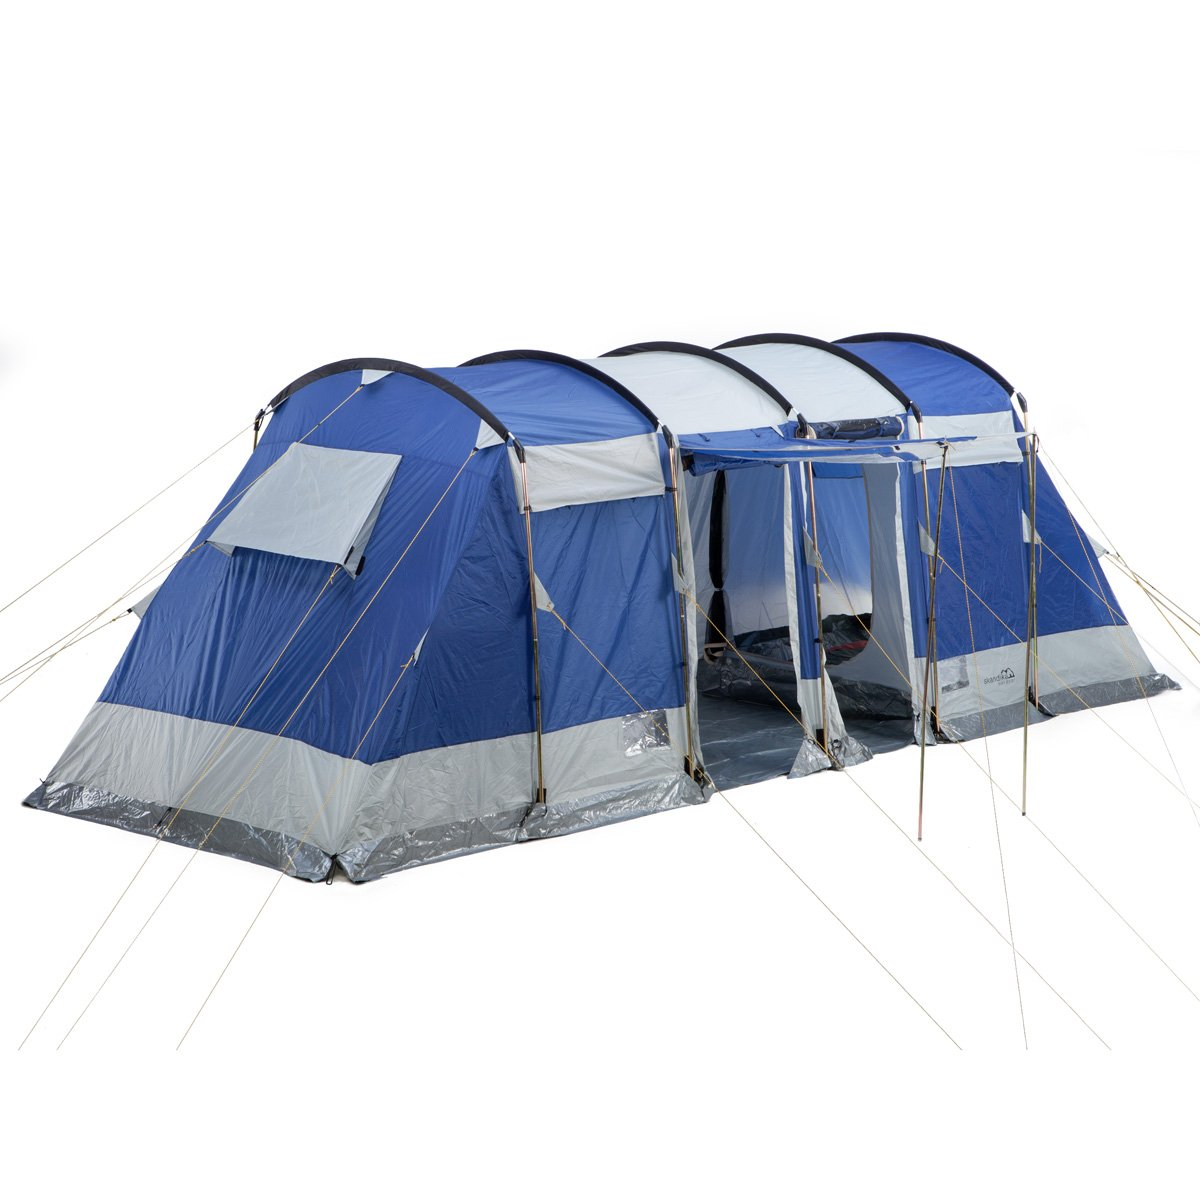 Skandika Montana Family Group Tunnel Tent with Sun Canopy 2 Sleeping Cabins 200 cm Peak Height 5000 mm Water Column Blue 6-Person Amazon.co.uk Sports ...  sc 1 st  Amazon UK & Skandika Montana Family Group Tunnel Tent with Sun Canopy 2 ...